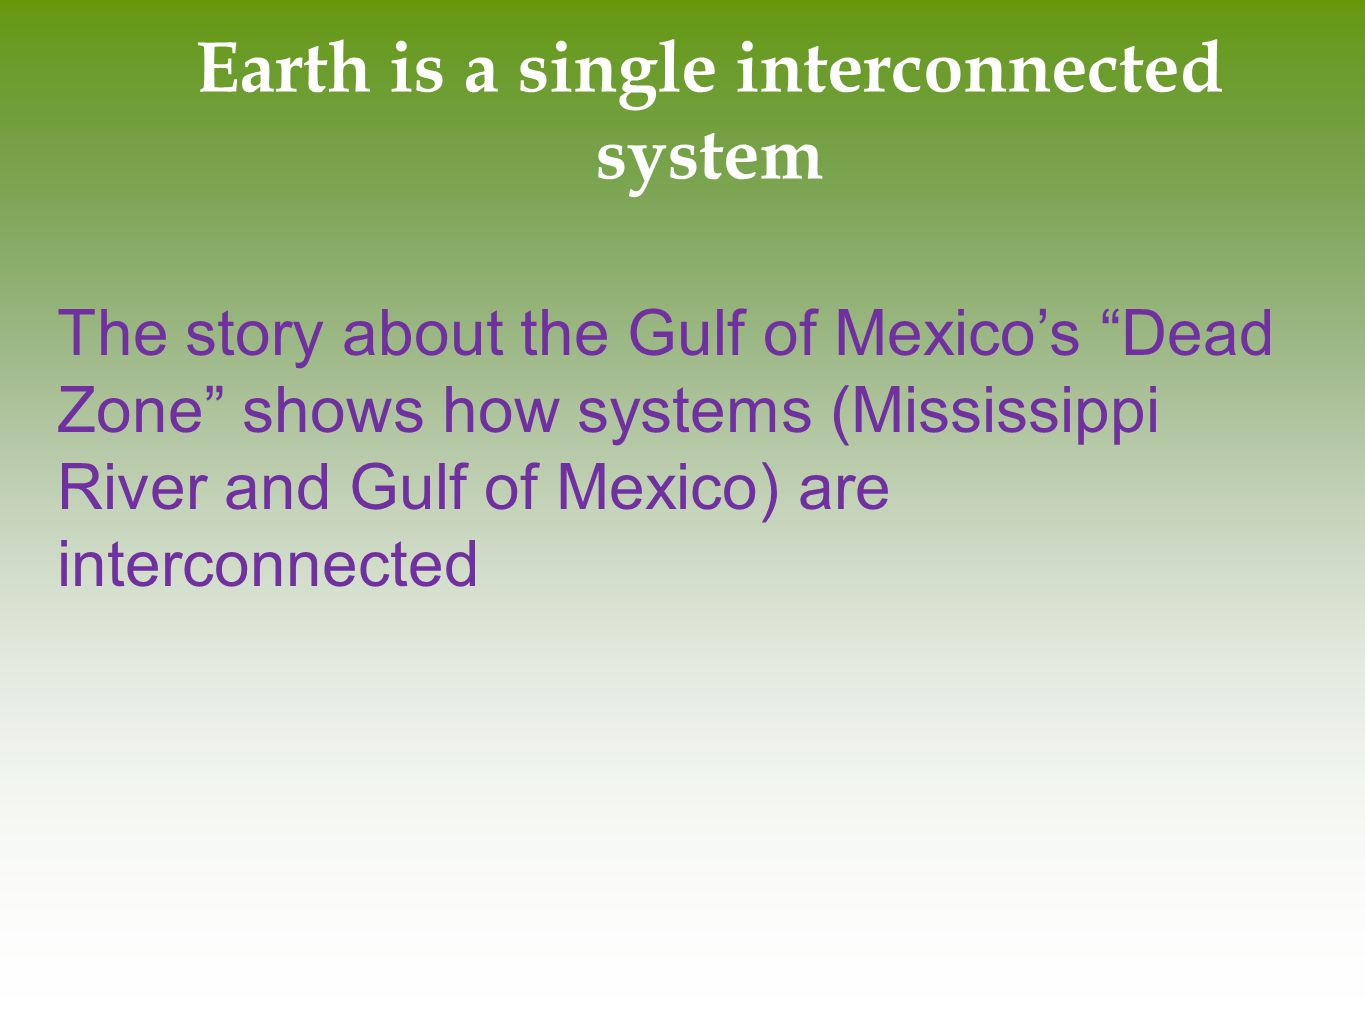 Earth is a single interconnected system